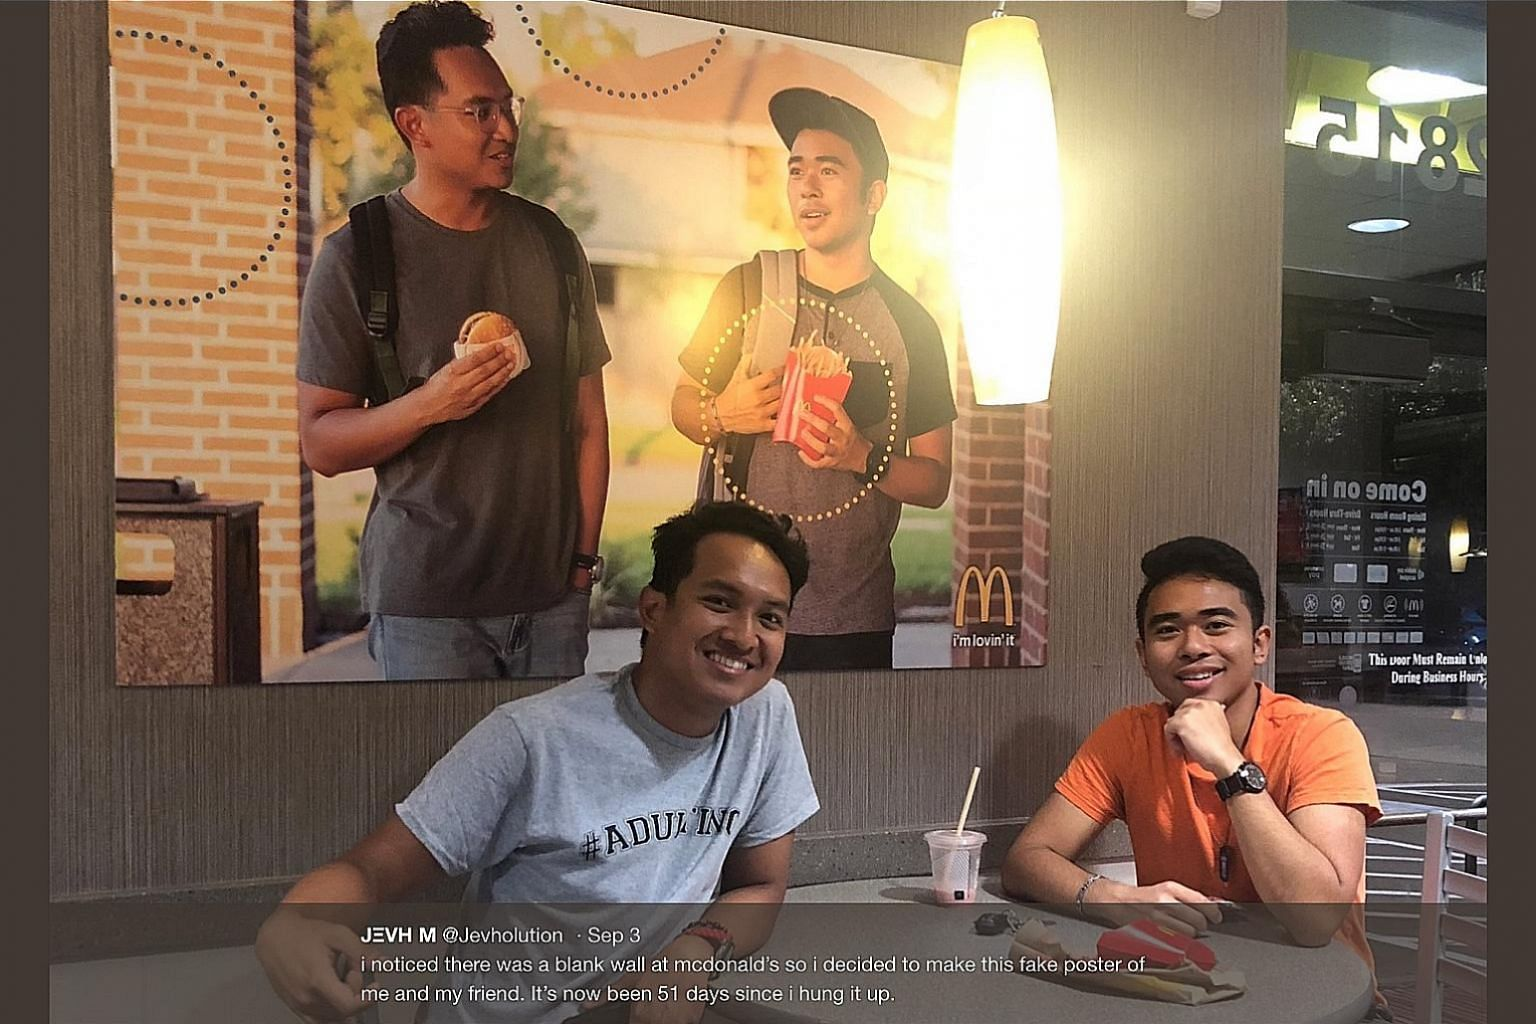 Unhappy that posters in a Houston McDonald's restaurant have no Asian representation, Mr Jevh Maravilla (right) roped in his friend, Mr Christian Toledo, to stealthily put up in the eatery a poster showing their faces.